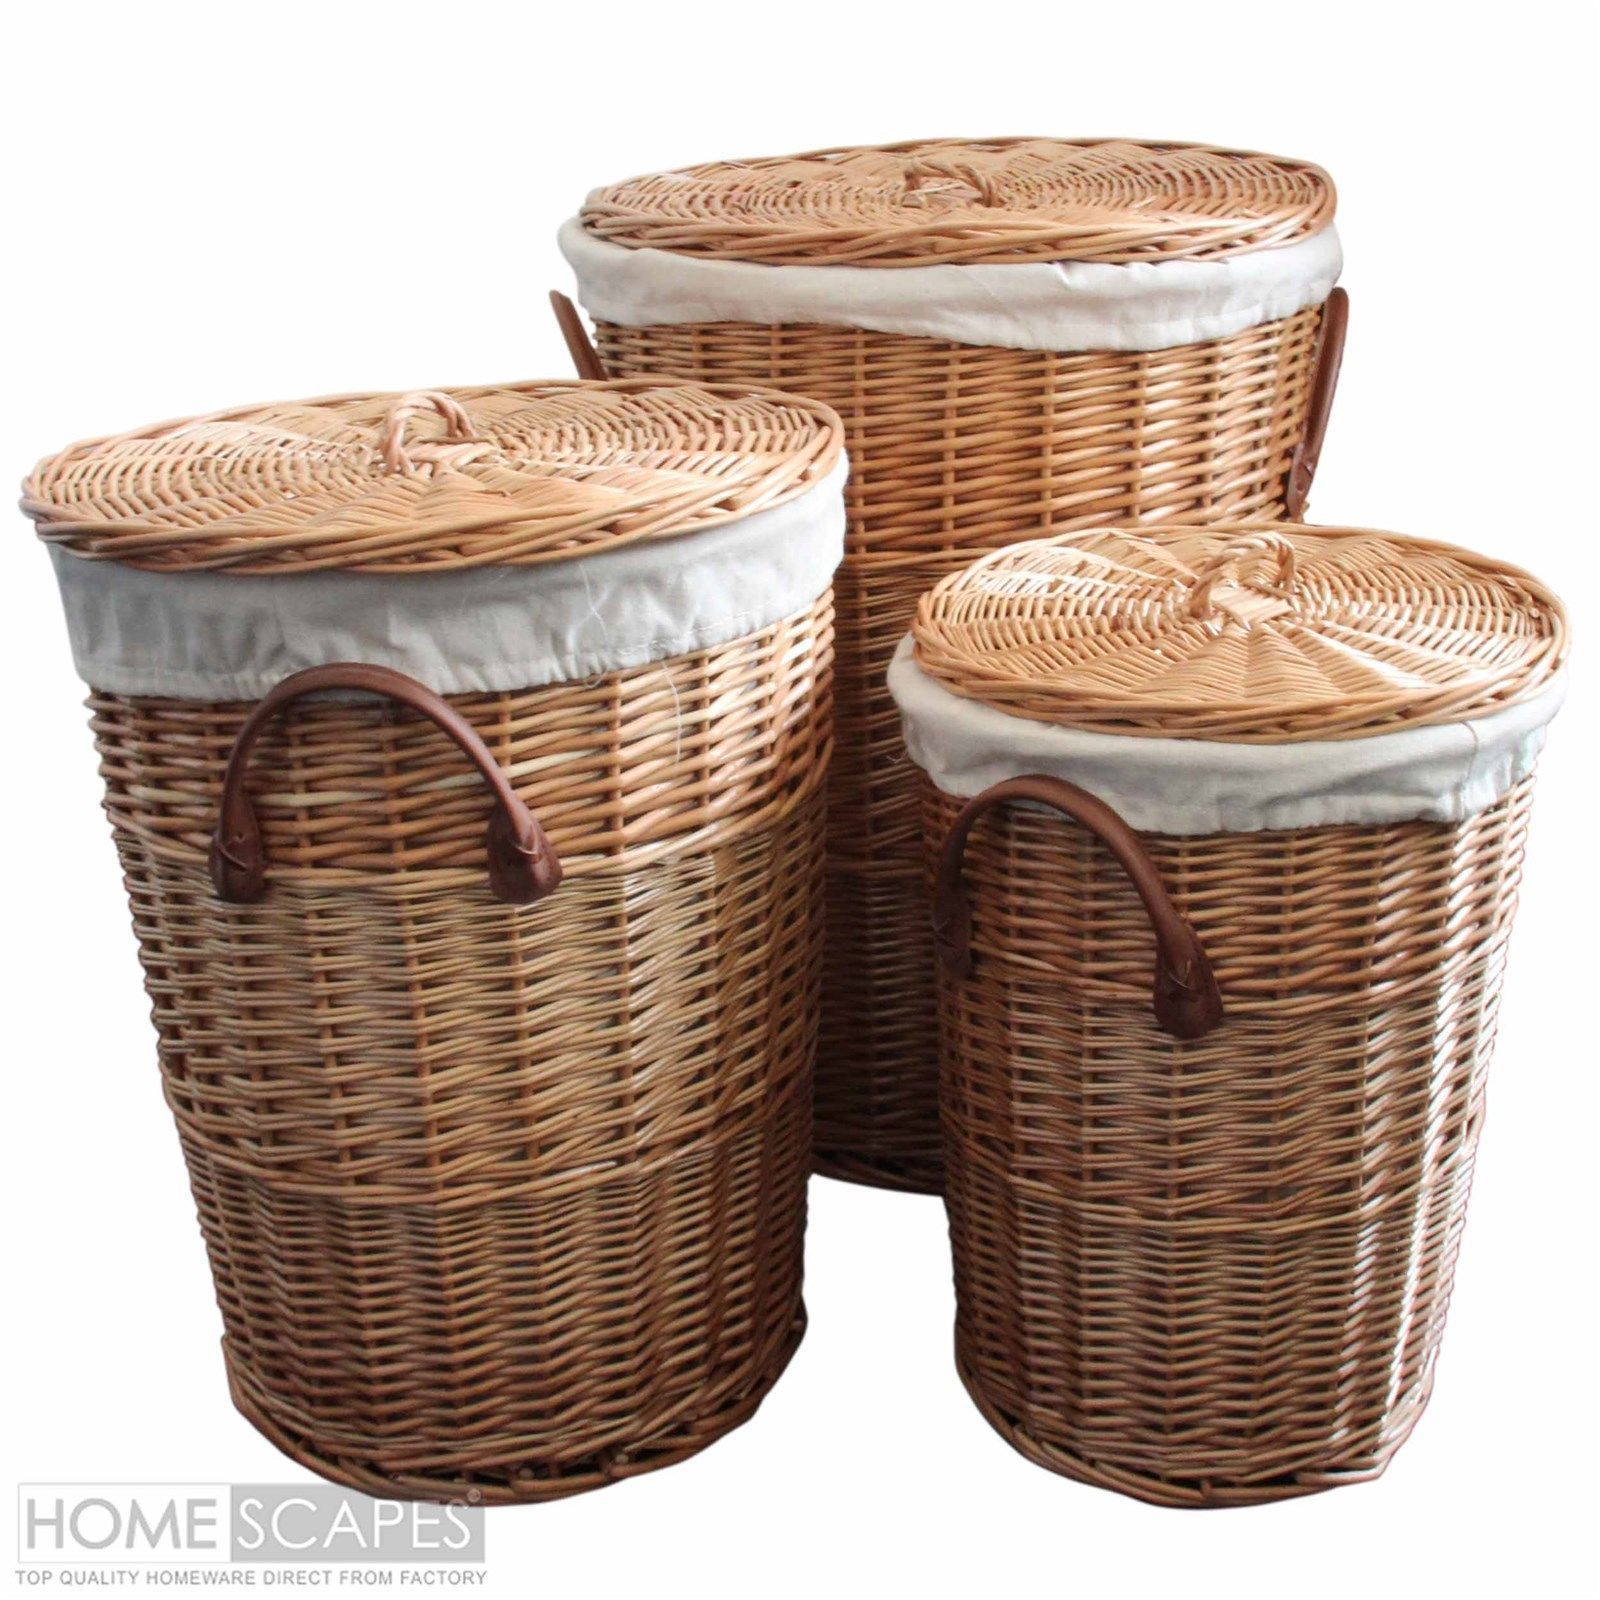 Set Of 3 Natural Round Willow Wicker Laundry Baskets Bathroom Storage With Lid Basket Bathroom